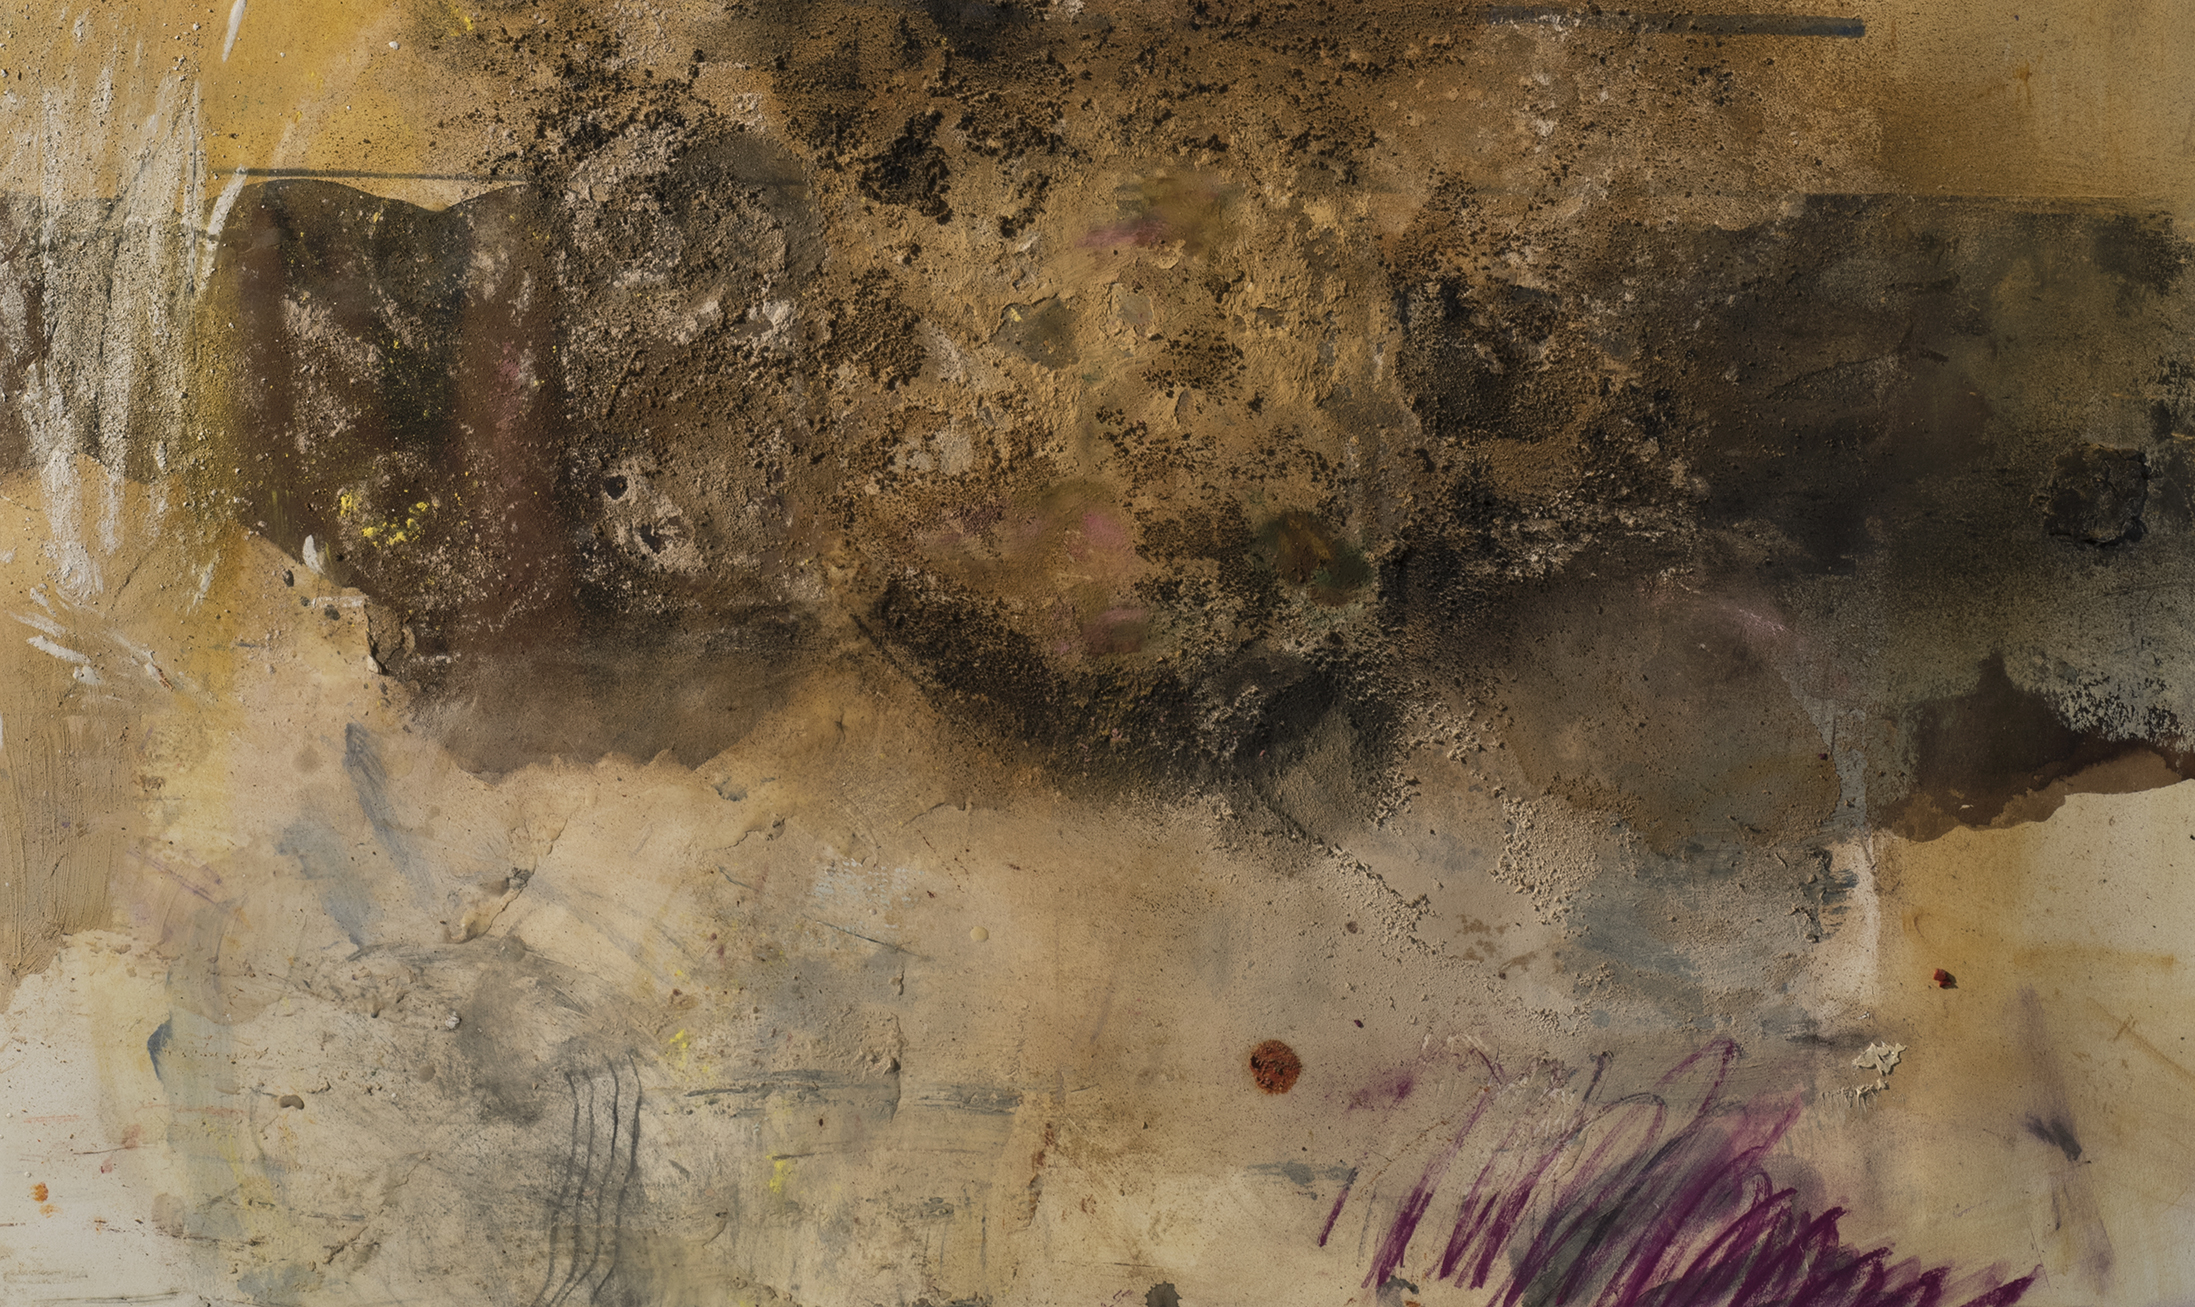 Cianne Fragione, Detail,  Immacolta on the Balcony , Oil, raw pigments, chalk pastel, graphite, walnut ink, collage, and encaustic on paper, 53 x 30 inches, 2018.